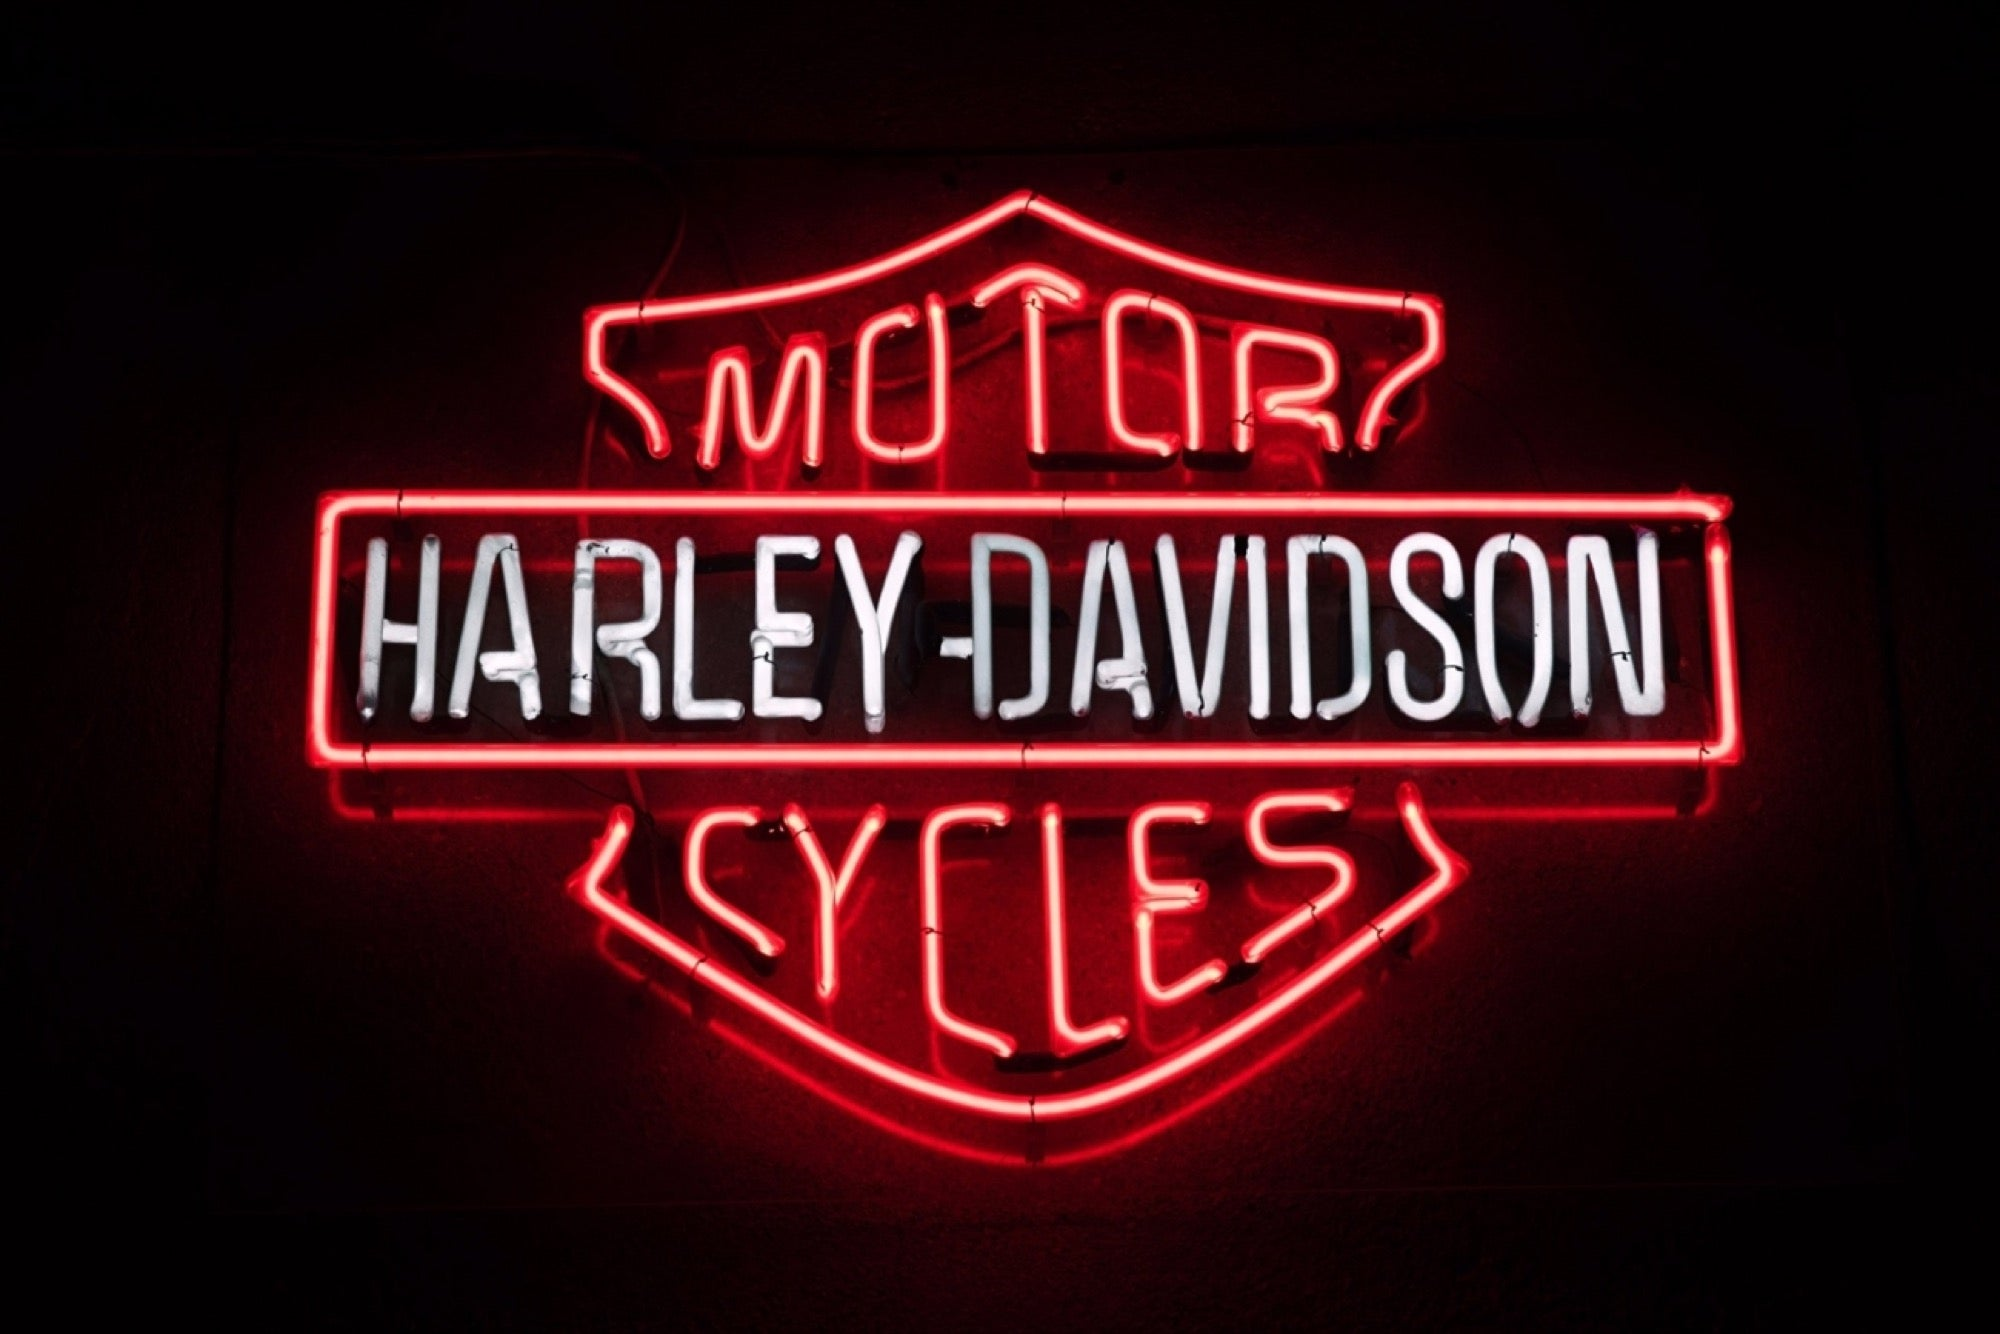 William S  Harley, Arthur Davidson, Walter Davidson